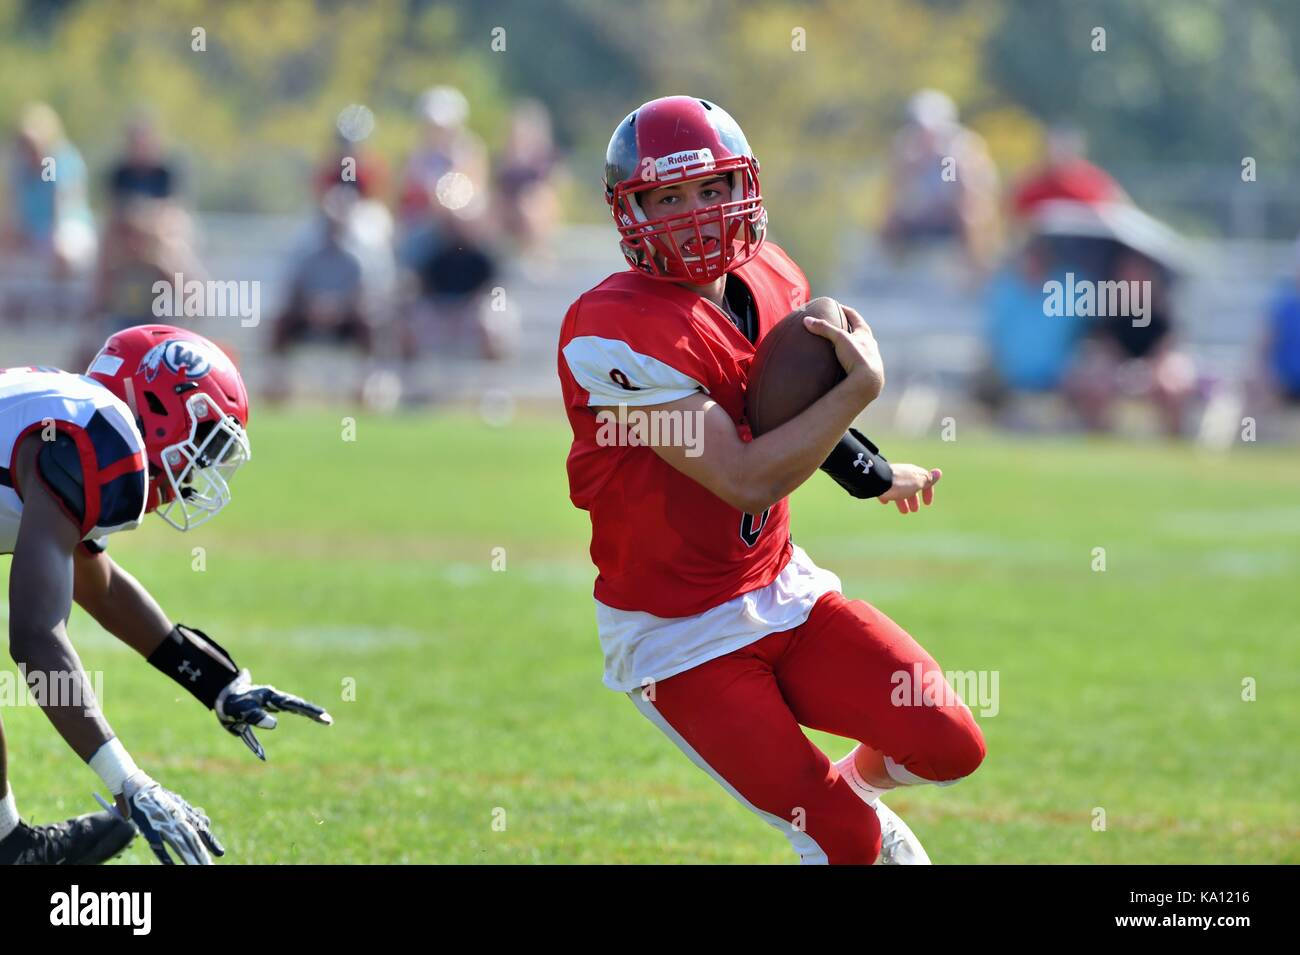 Quarterback running as an option after rolling out of the pocket. USA. - Stock Image